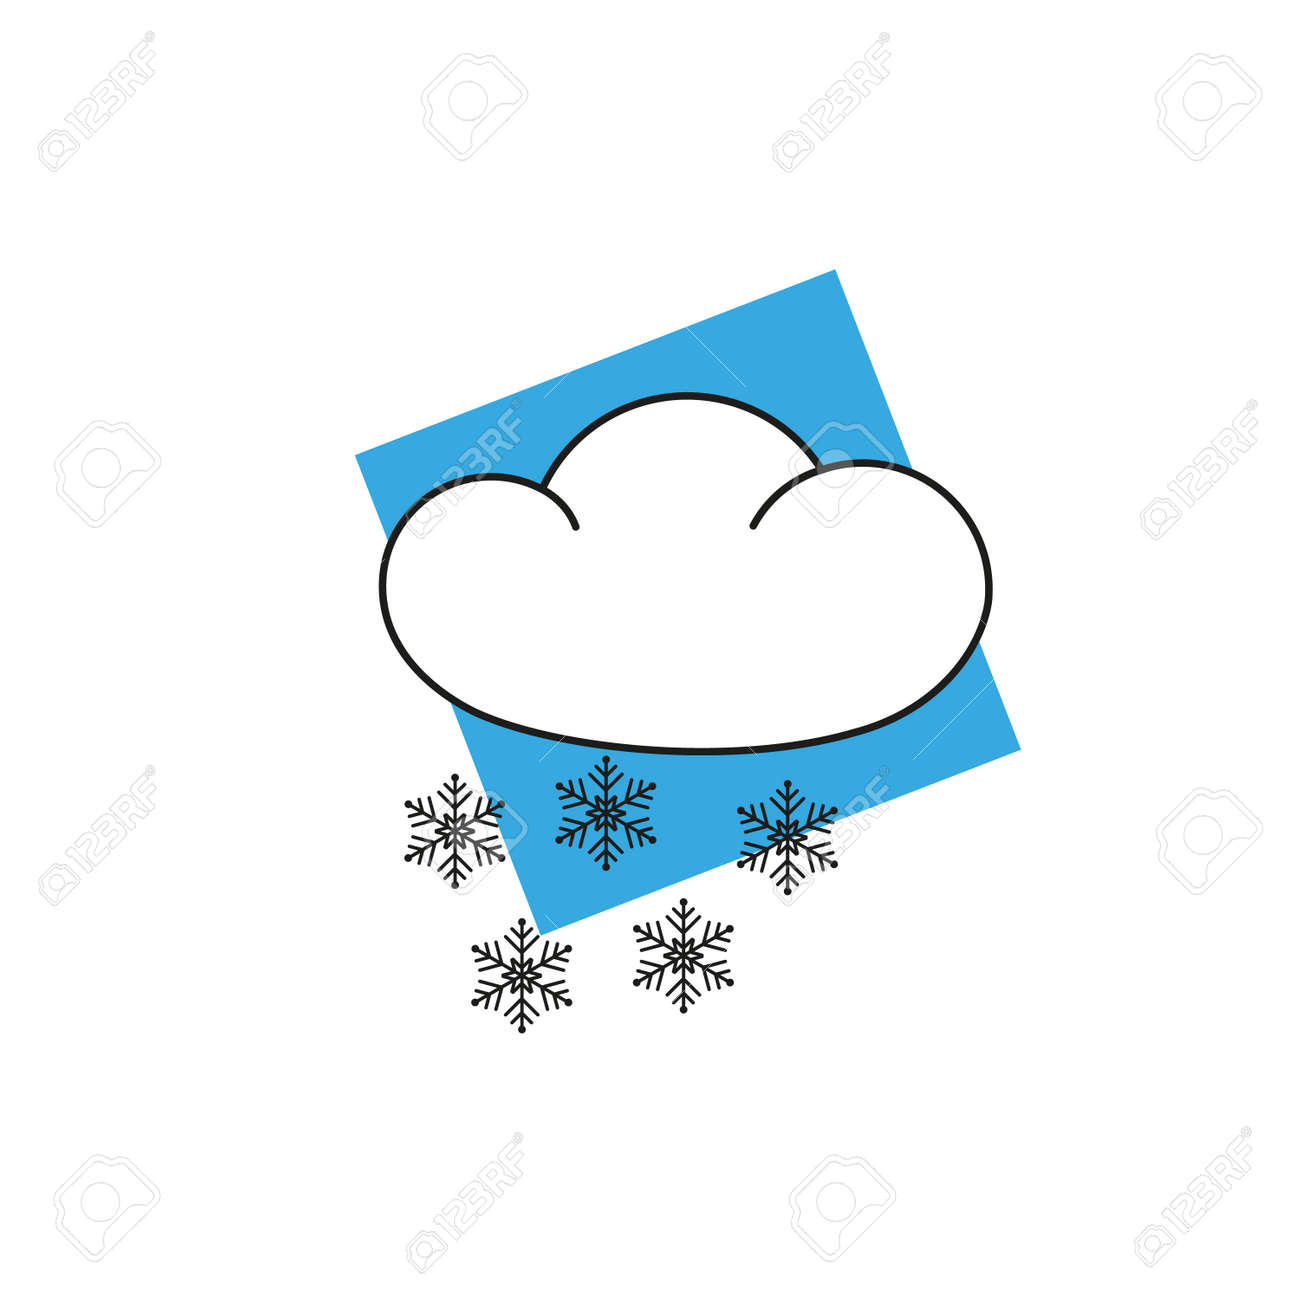 hight resolution of vector weather icon clipart snow flakes illustration